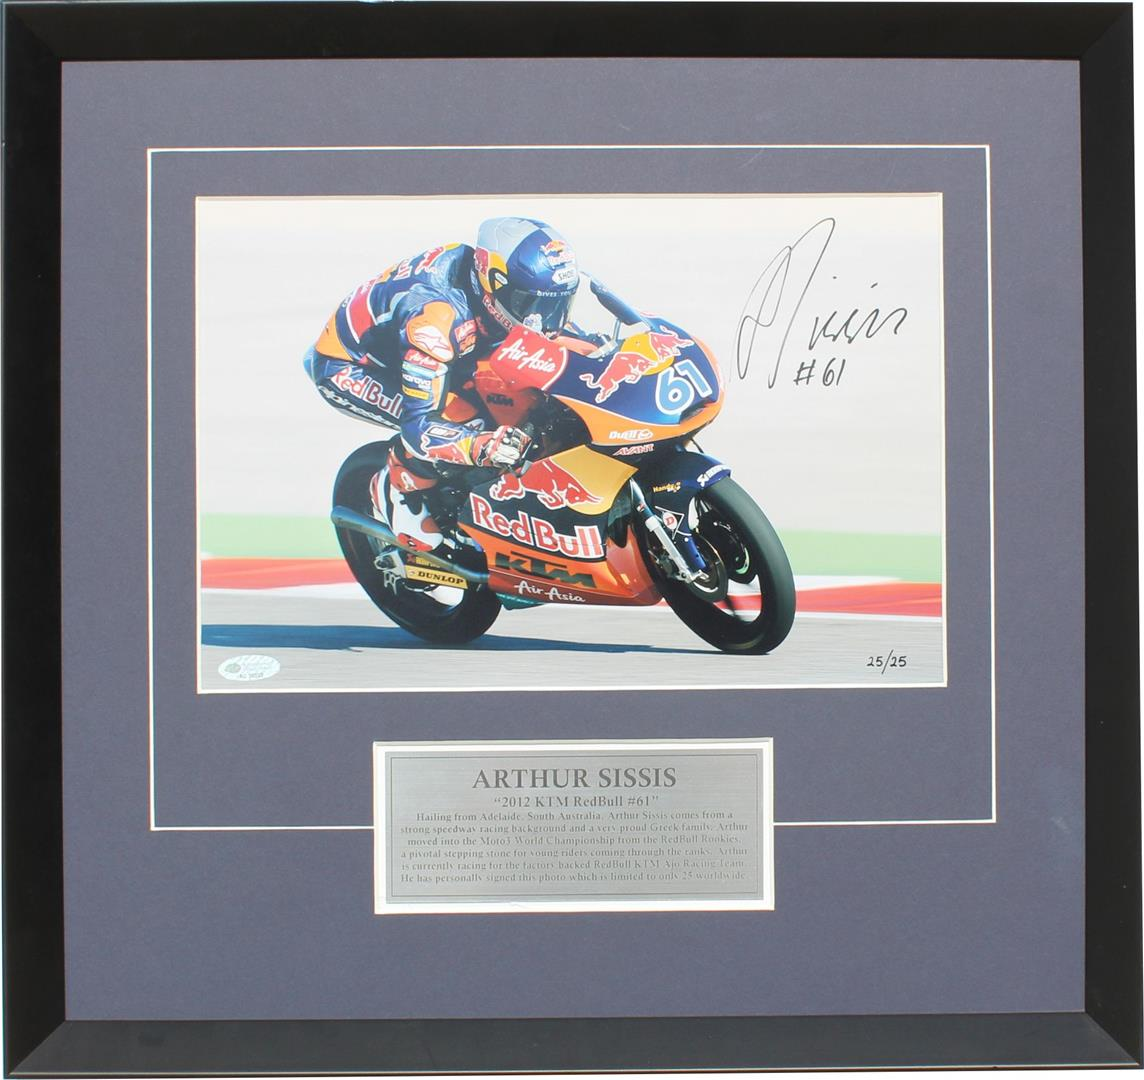 arthur sissis signed KTM moto3 memorabilia photos collectibles